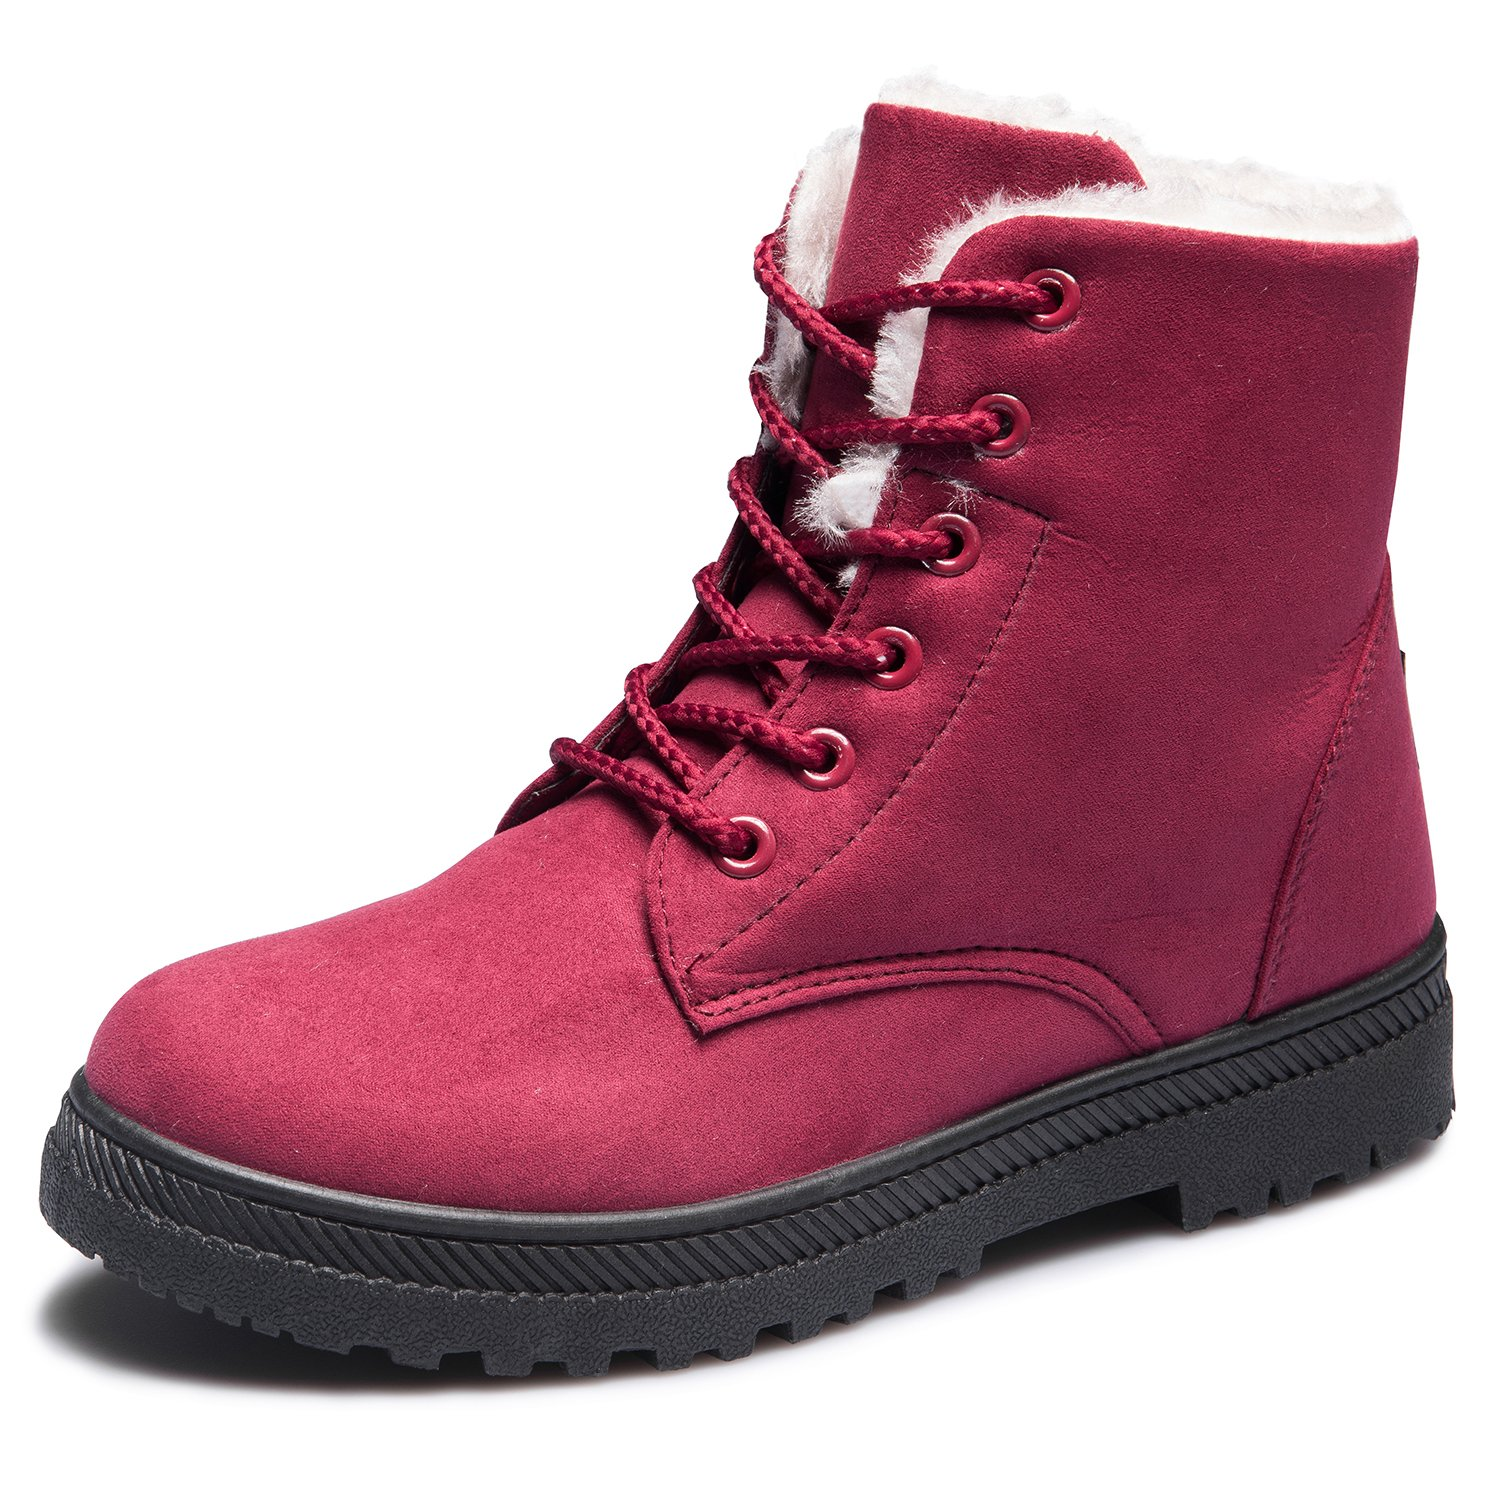 50b64919d429c CIOR Women's Winter Boots Warm Suede Lace up Snow Boots 2019 Waterproof PU  Shoes: Amazon.ca: Shoes & Handbags